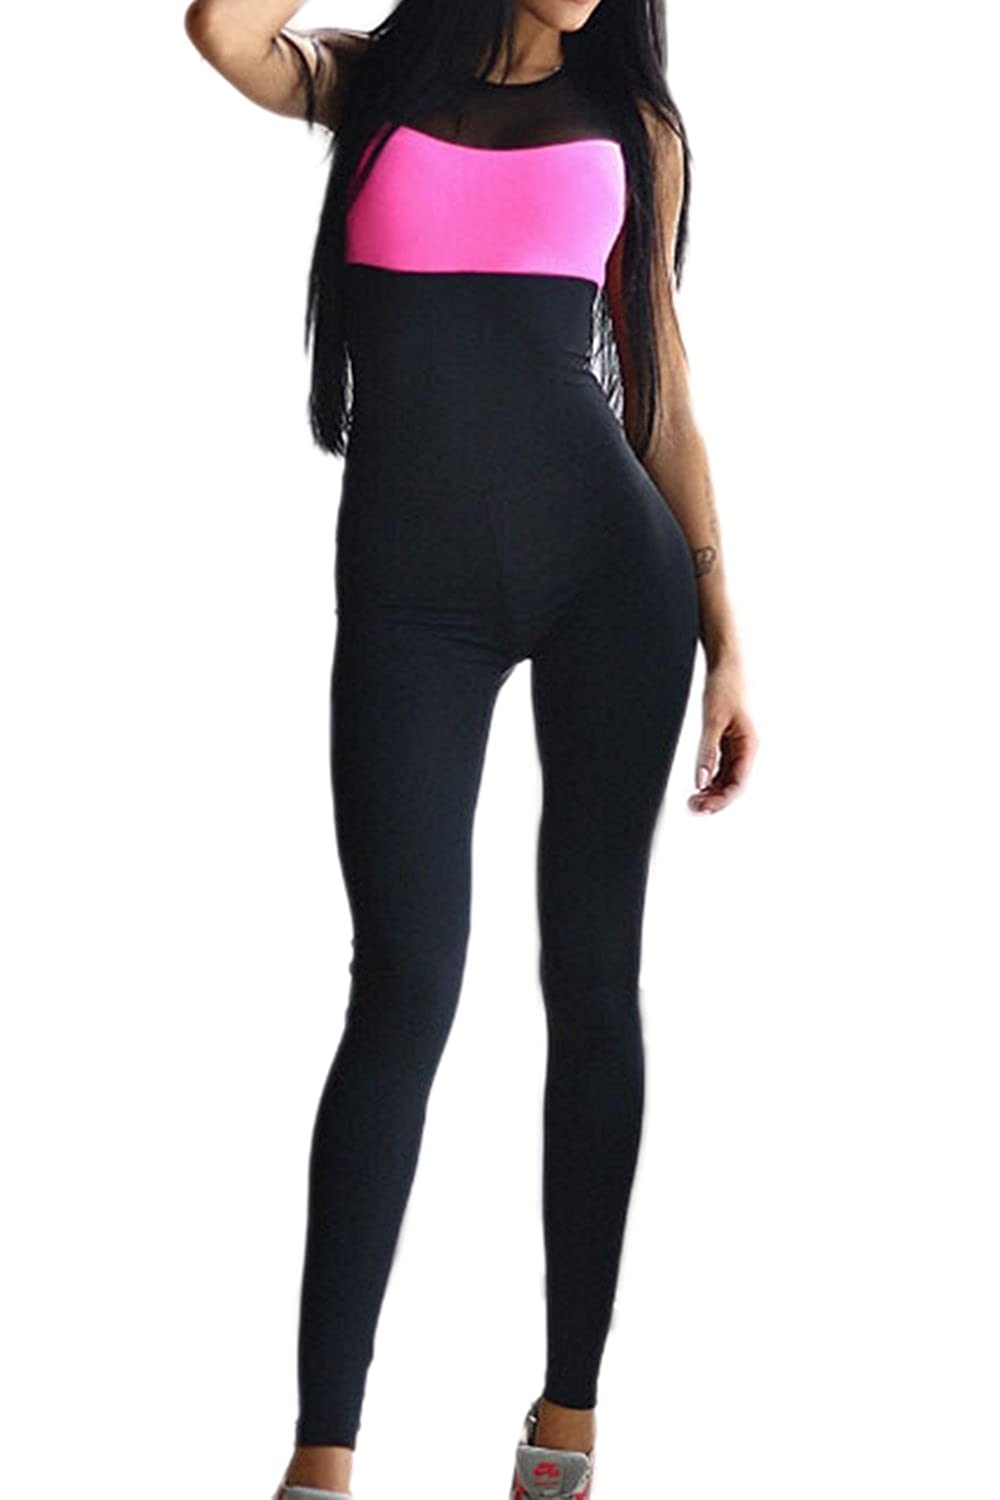 Women's Strapless Backless Bodycon Yoga Sports Jumpsuits Rompers CATNXXONY13